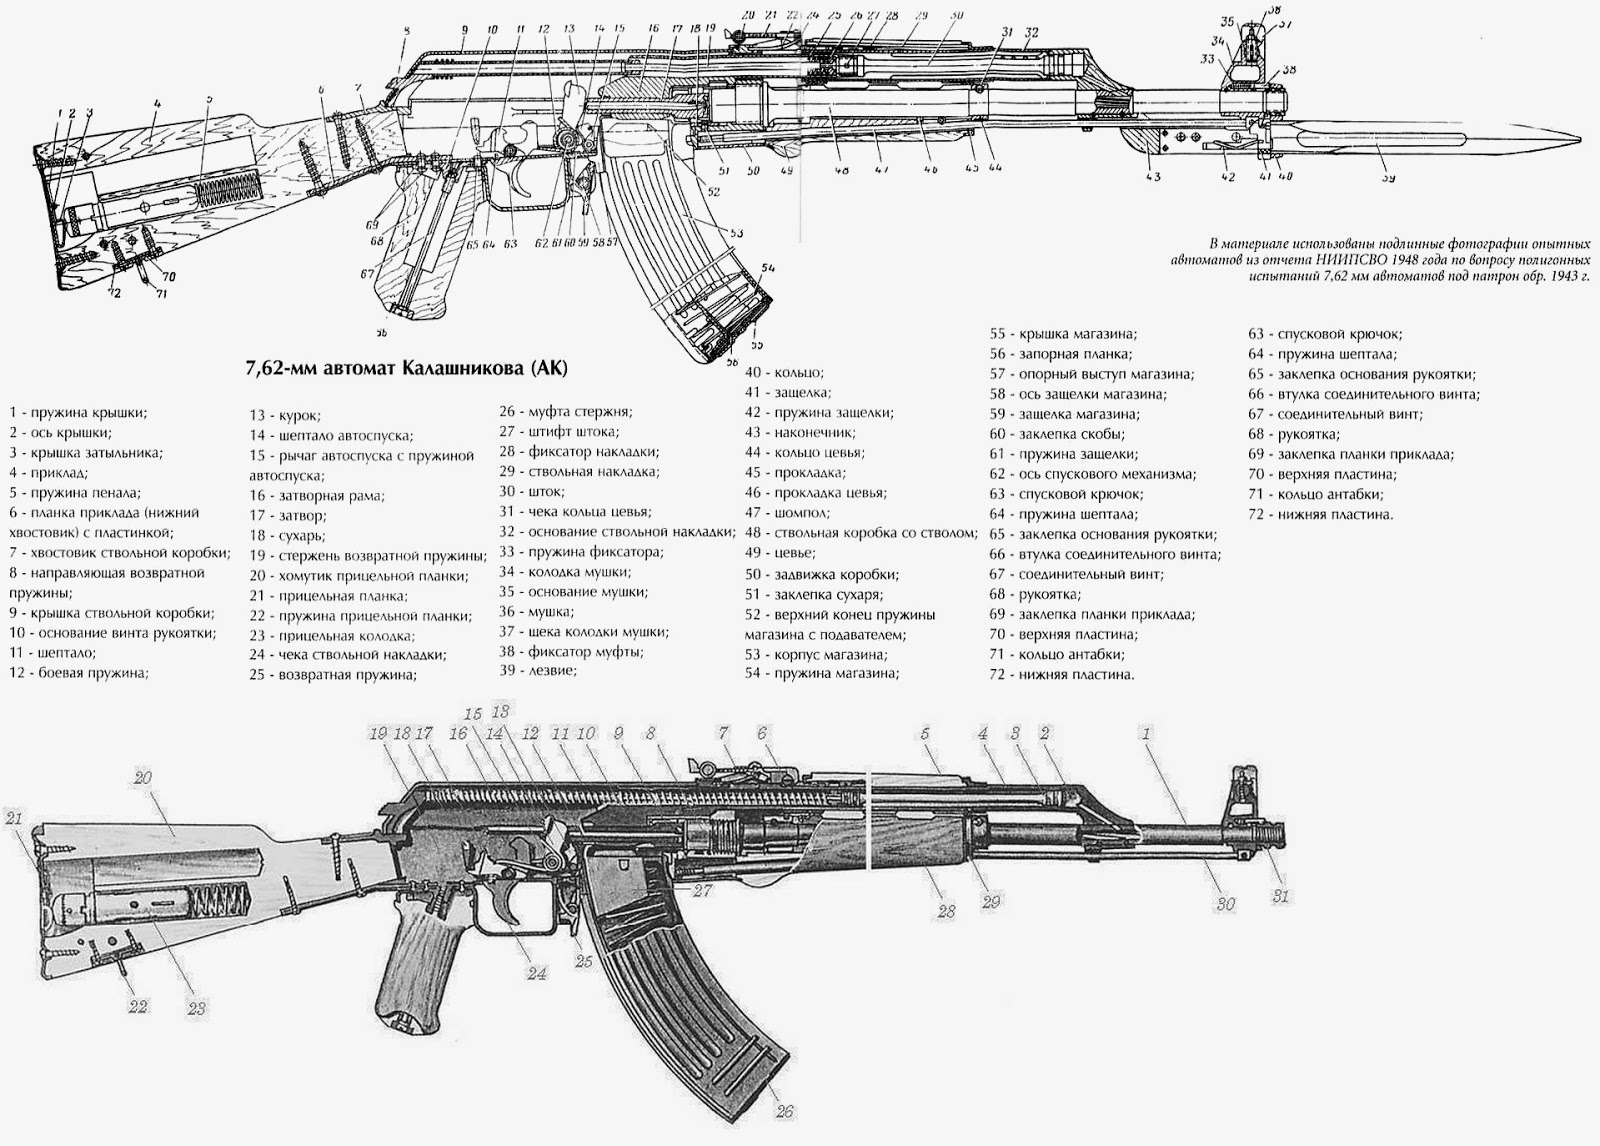 Ak 47 Diagram Pictures To Pin